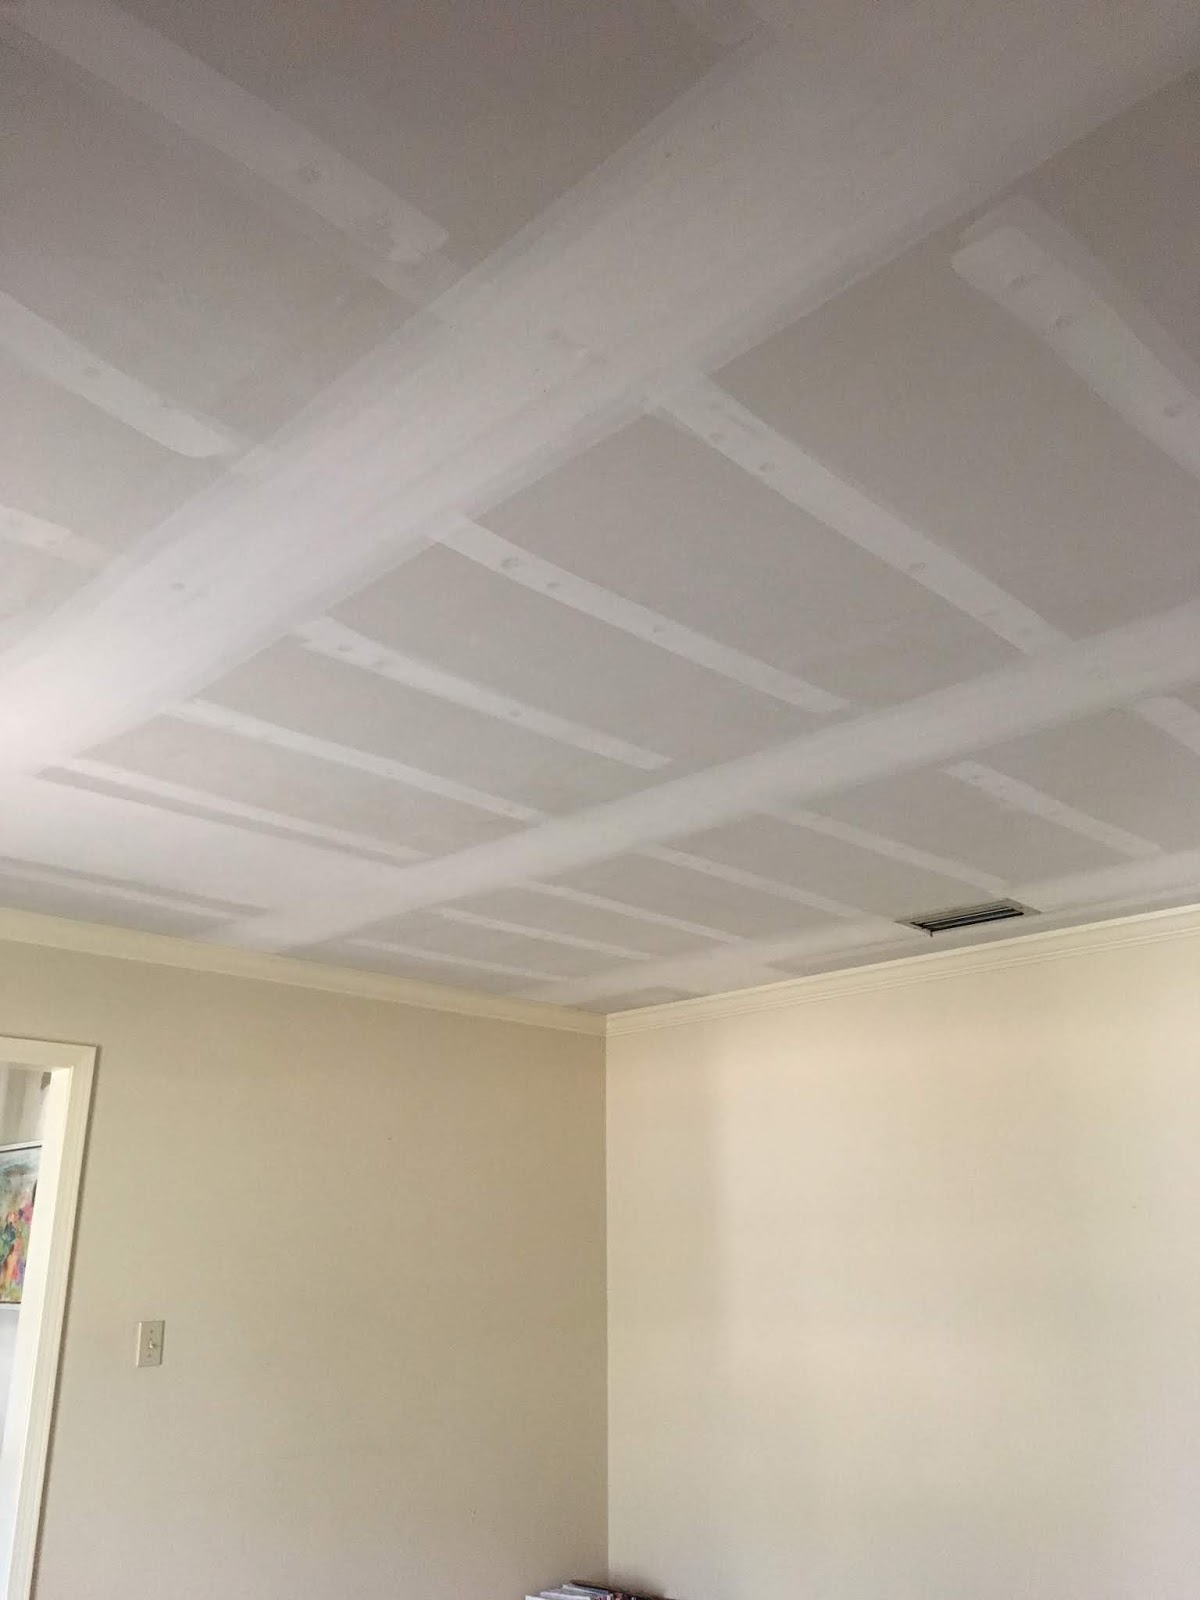 Ceilings After Popcorn Removal